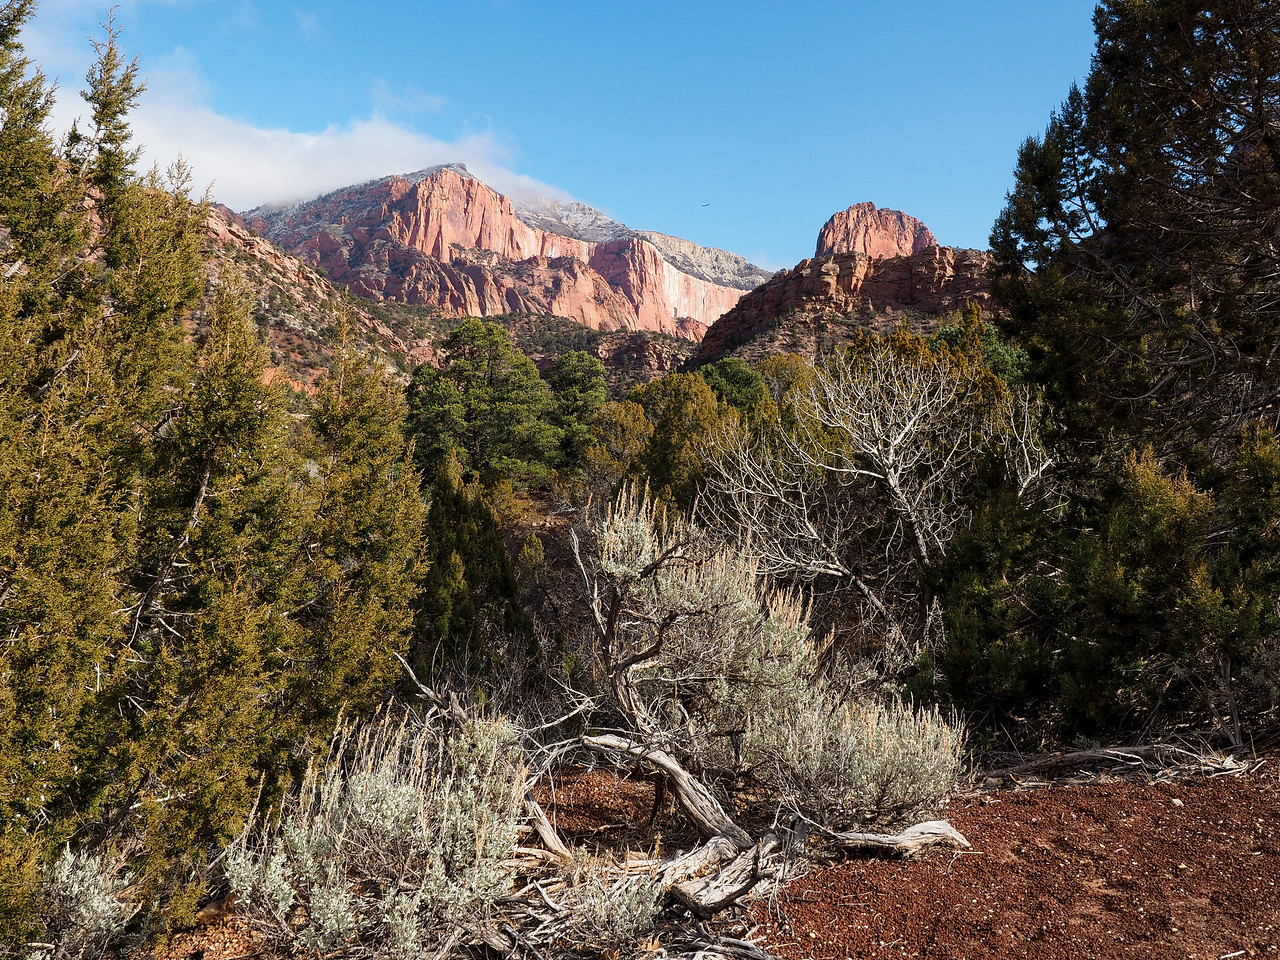 Kolob Canyons section of Zion National Park